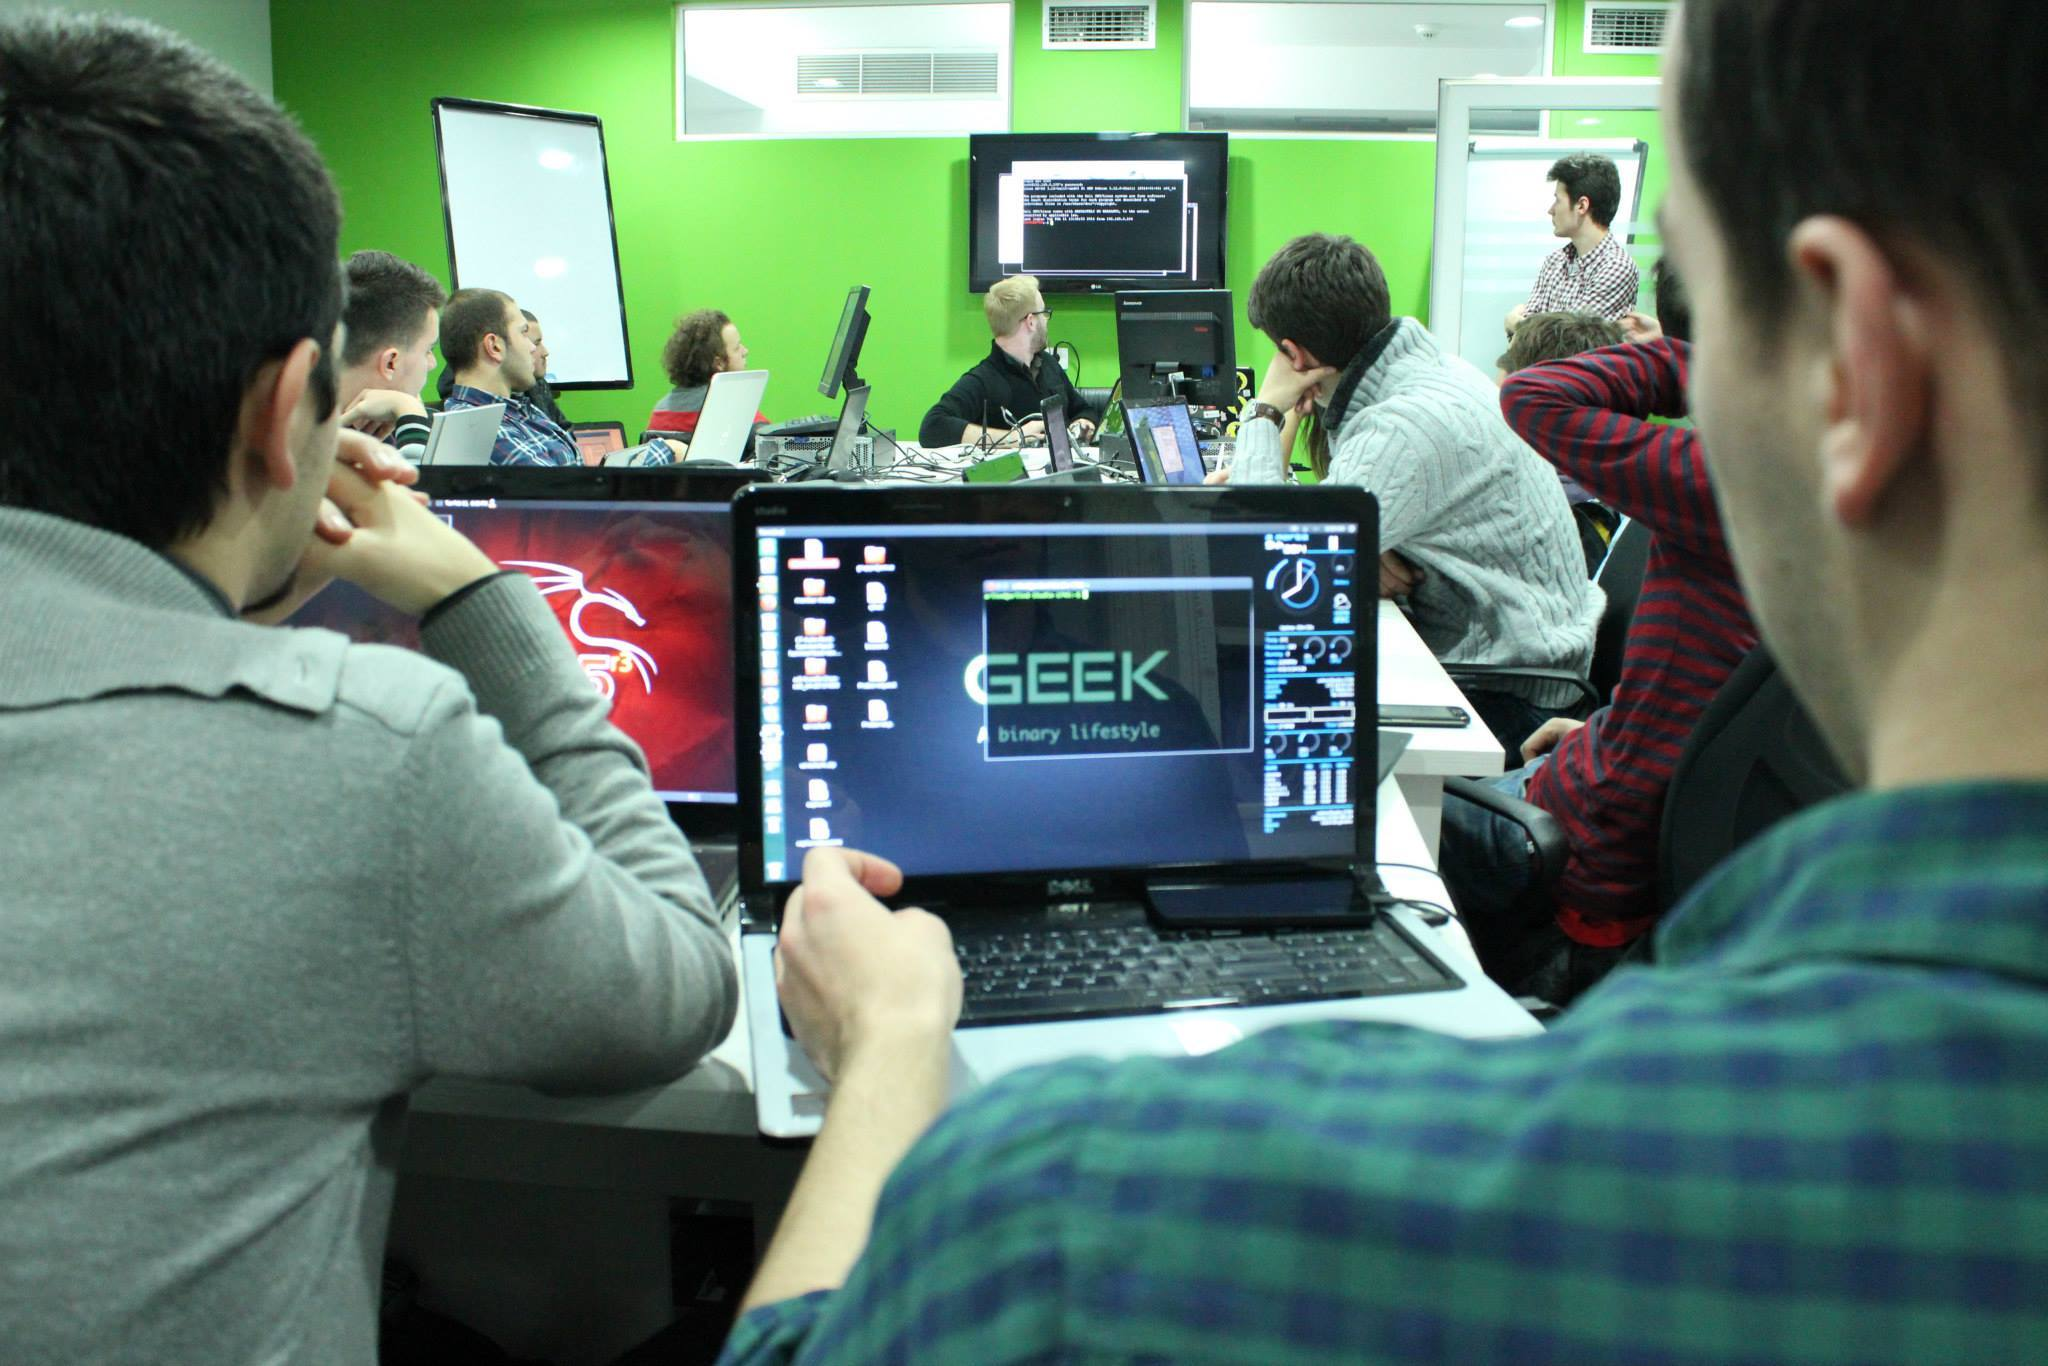 Learning to secure companies against hacking at the Cyber Academy